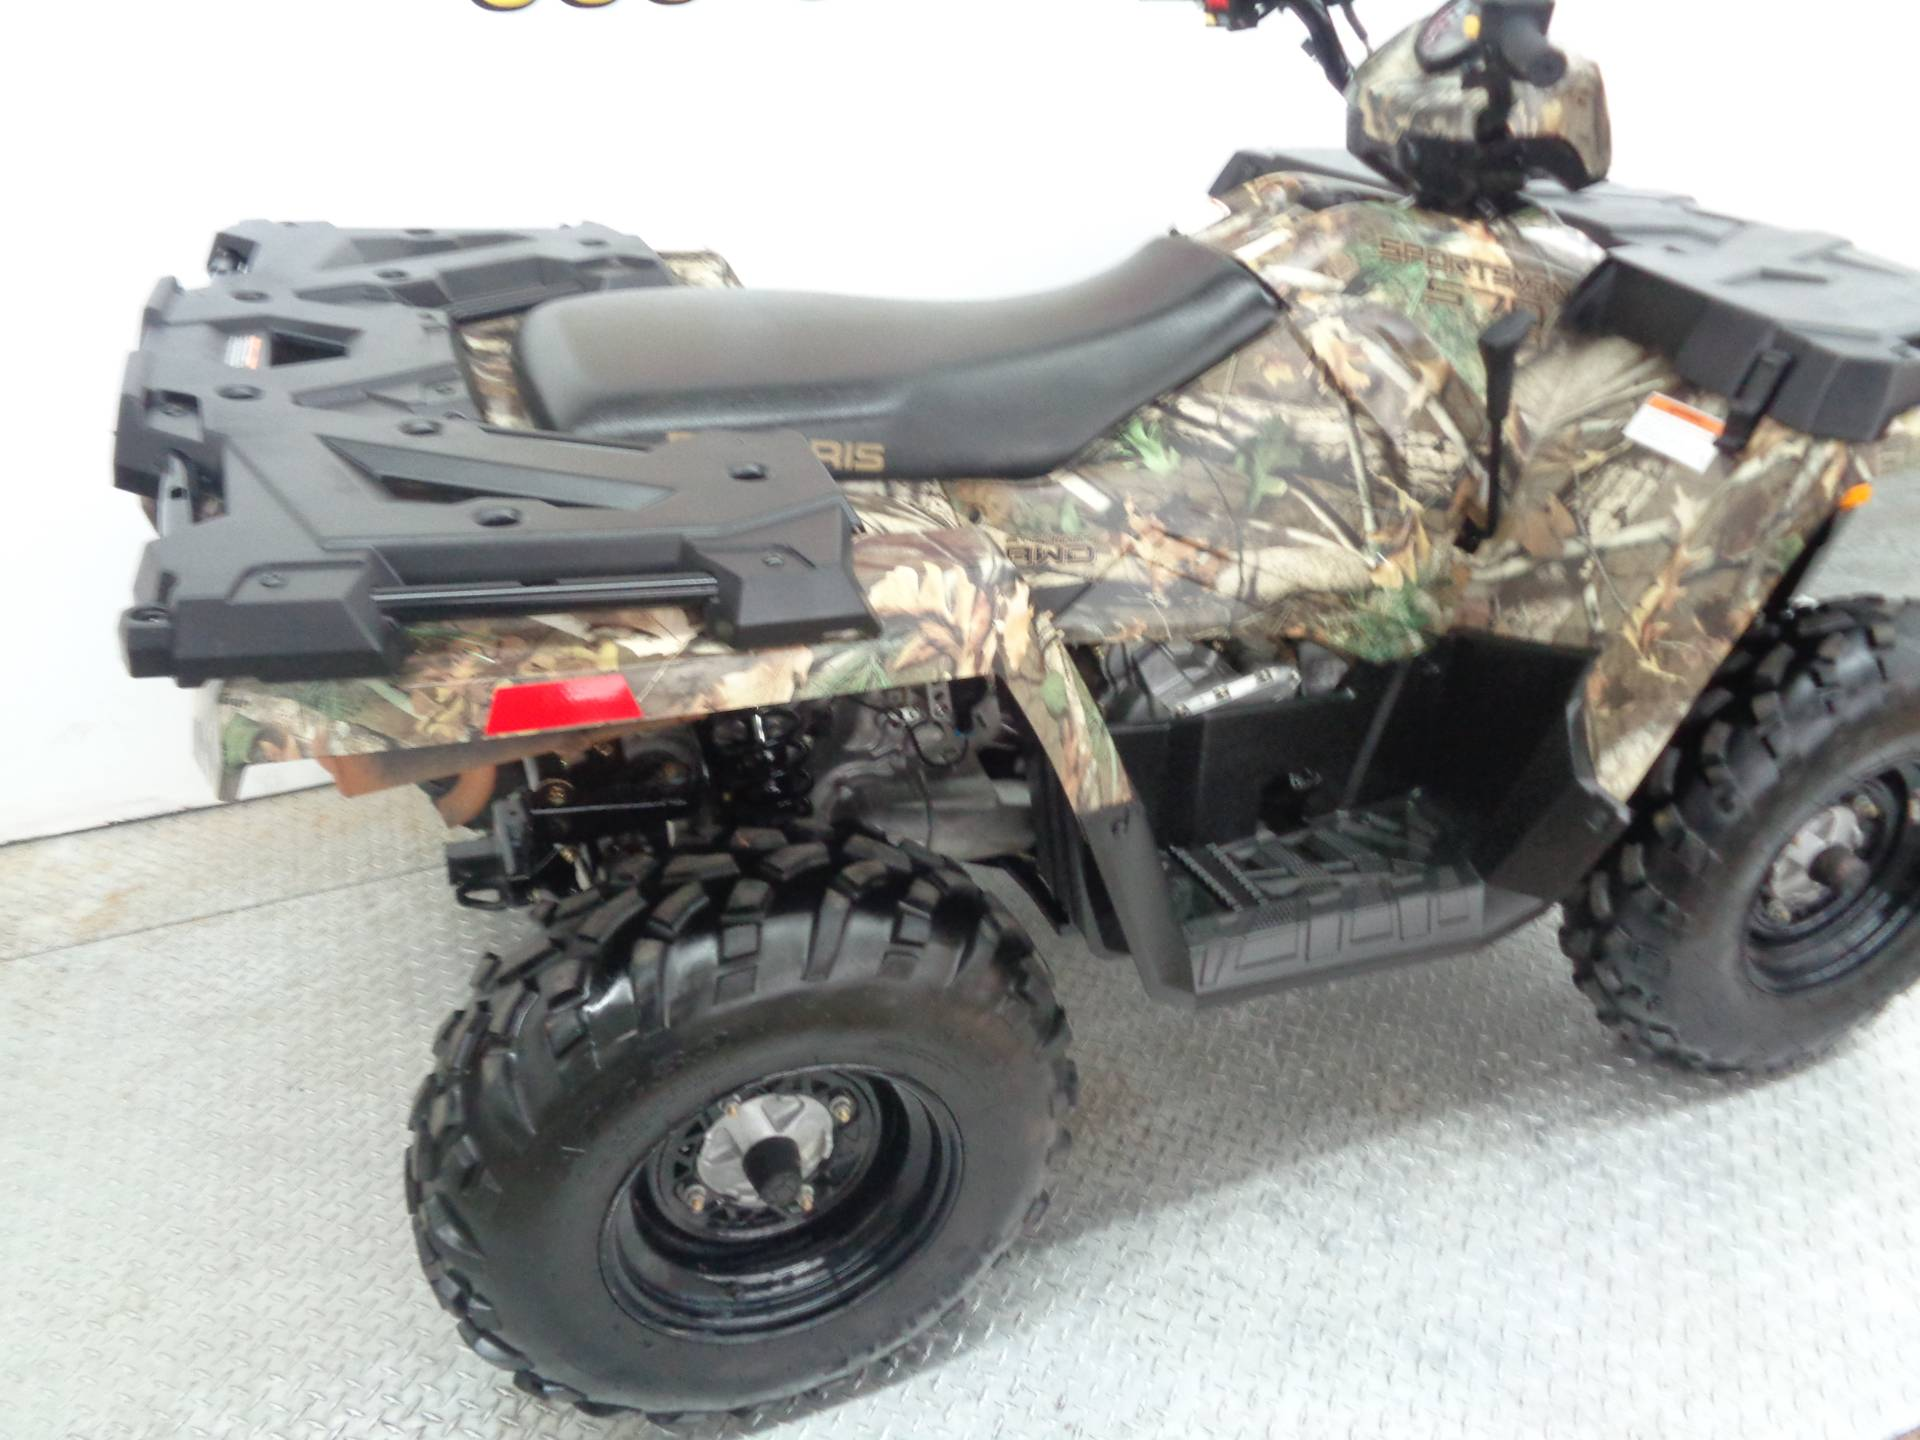 2015 Polaris Sportsman® 570 in Tulsa, Oklahoma - Photo 5